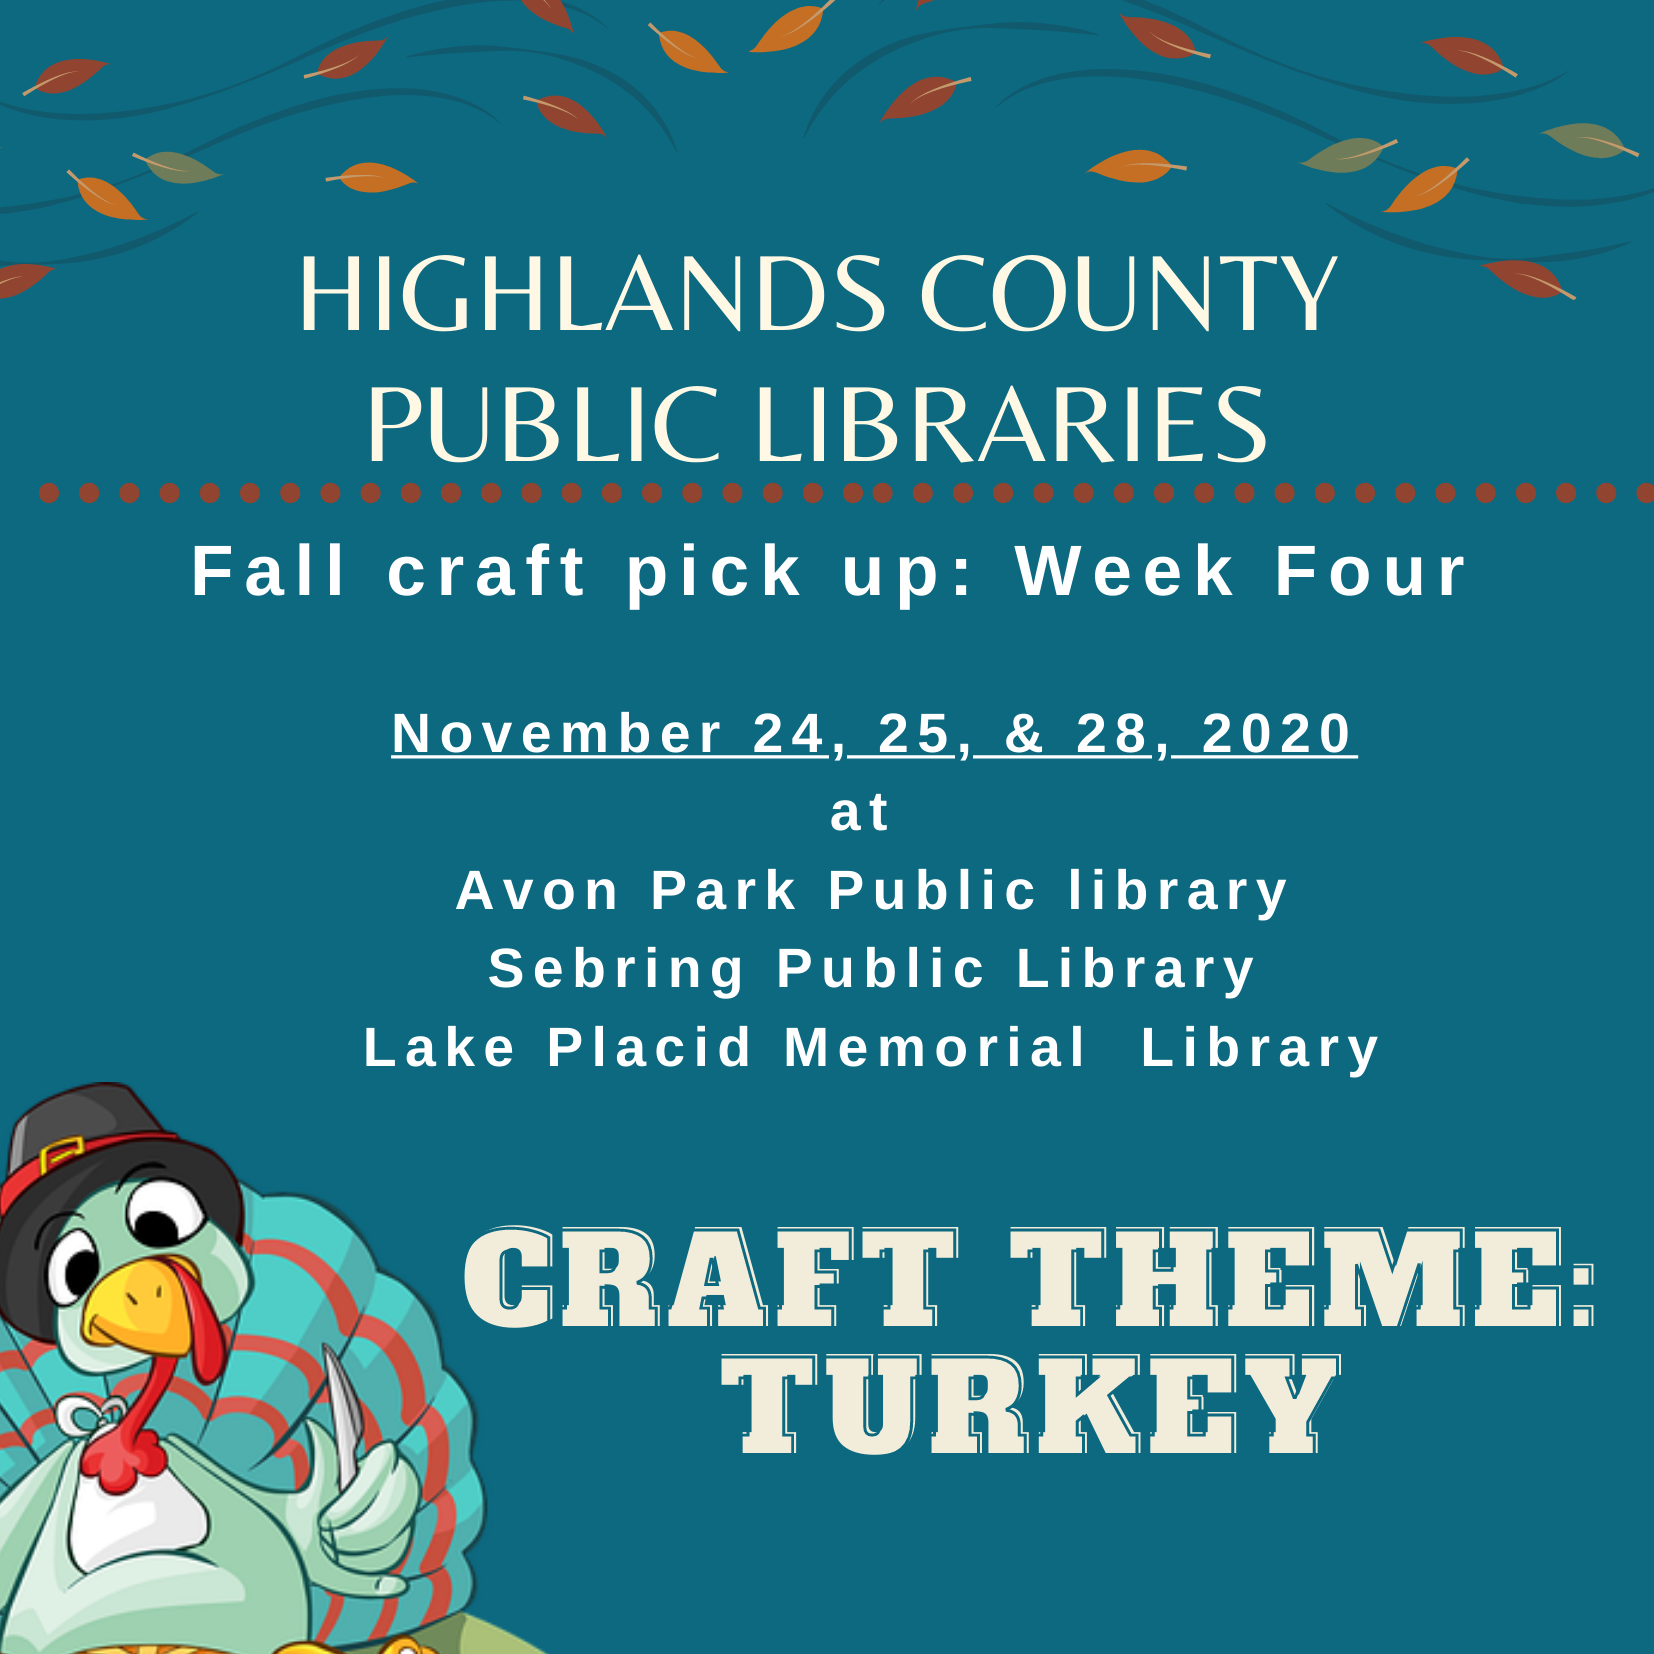 "November craft bags for week four will be available November 24, 25, & 28, 2020 during normal library operating hours. The fourth and final week's theme will be a craft of ""turkey."" Each bag/kit will contain the supplies and instructions for the craft along with related book titles, snacks, and additional resources that tie into the craft! We can't wait to see your crafting creations. Use #highlandscountylibrariesfallcrafts to share your final product."